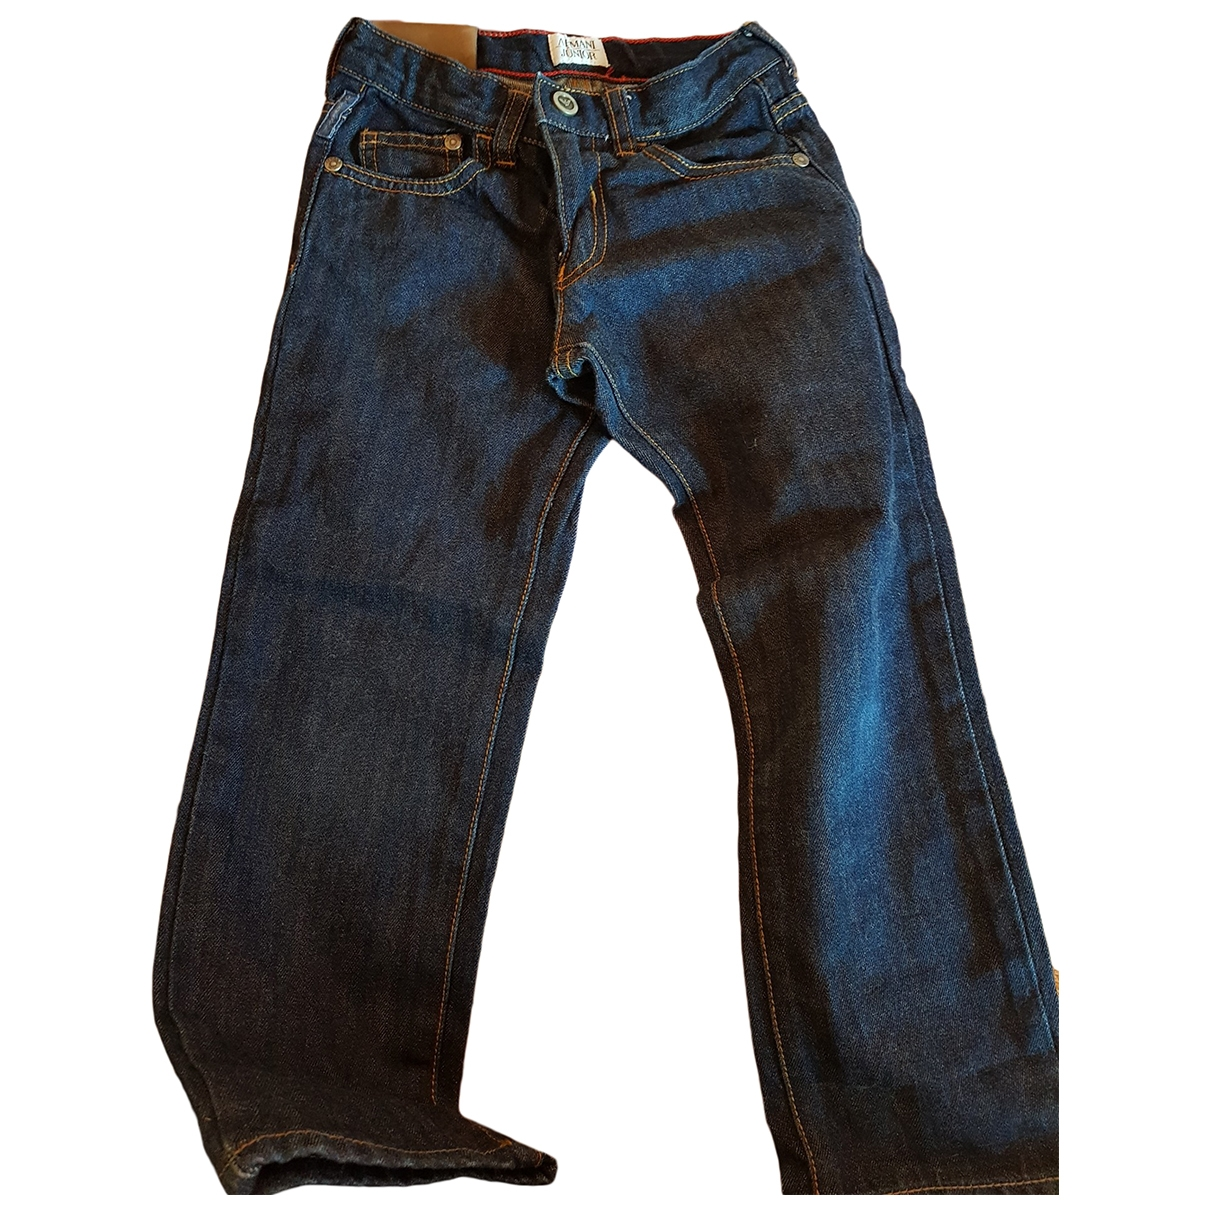 Armani Jeans \N Blue Denim - Jeans Trousers for Kids 5 years - up to 108cm FR